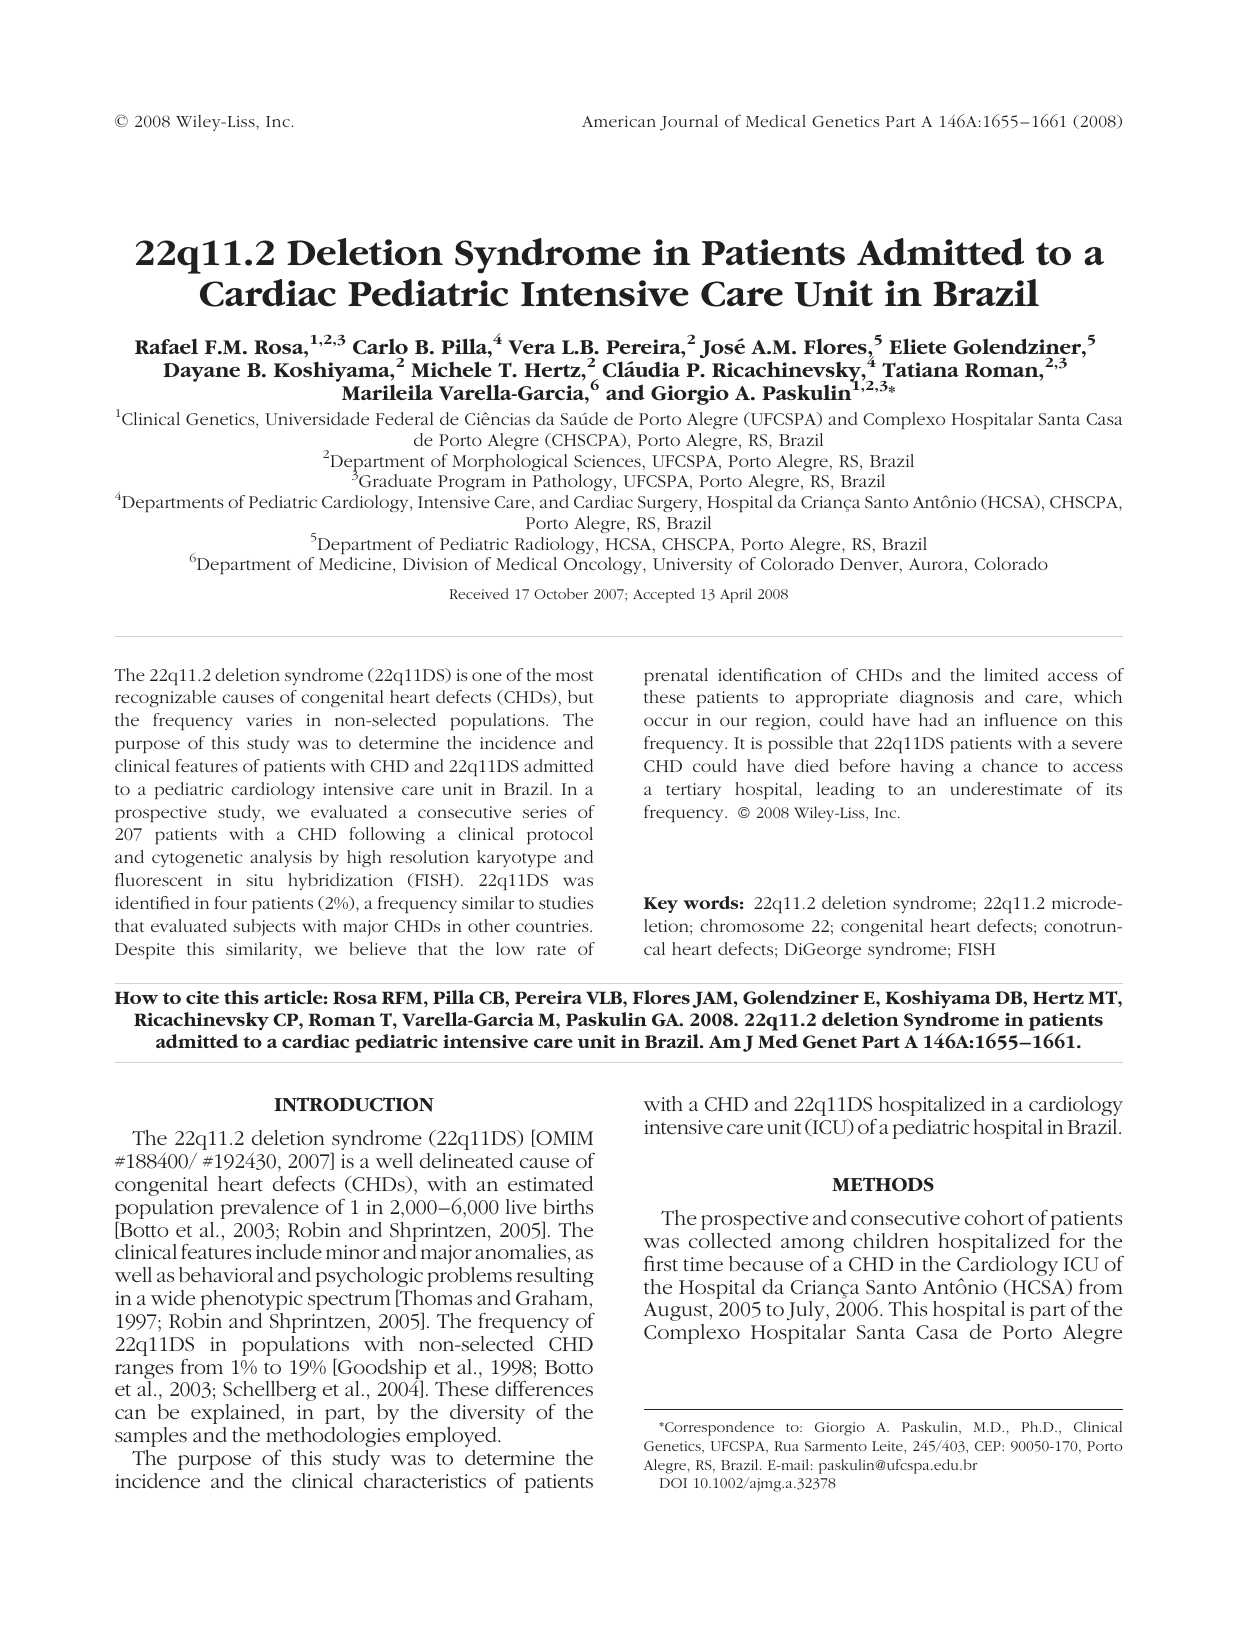 22q11 2 deletion syndrome in patients admitted to a cardiac